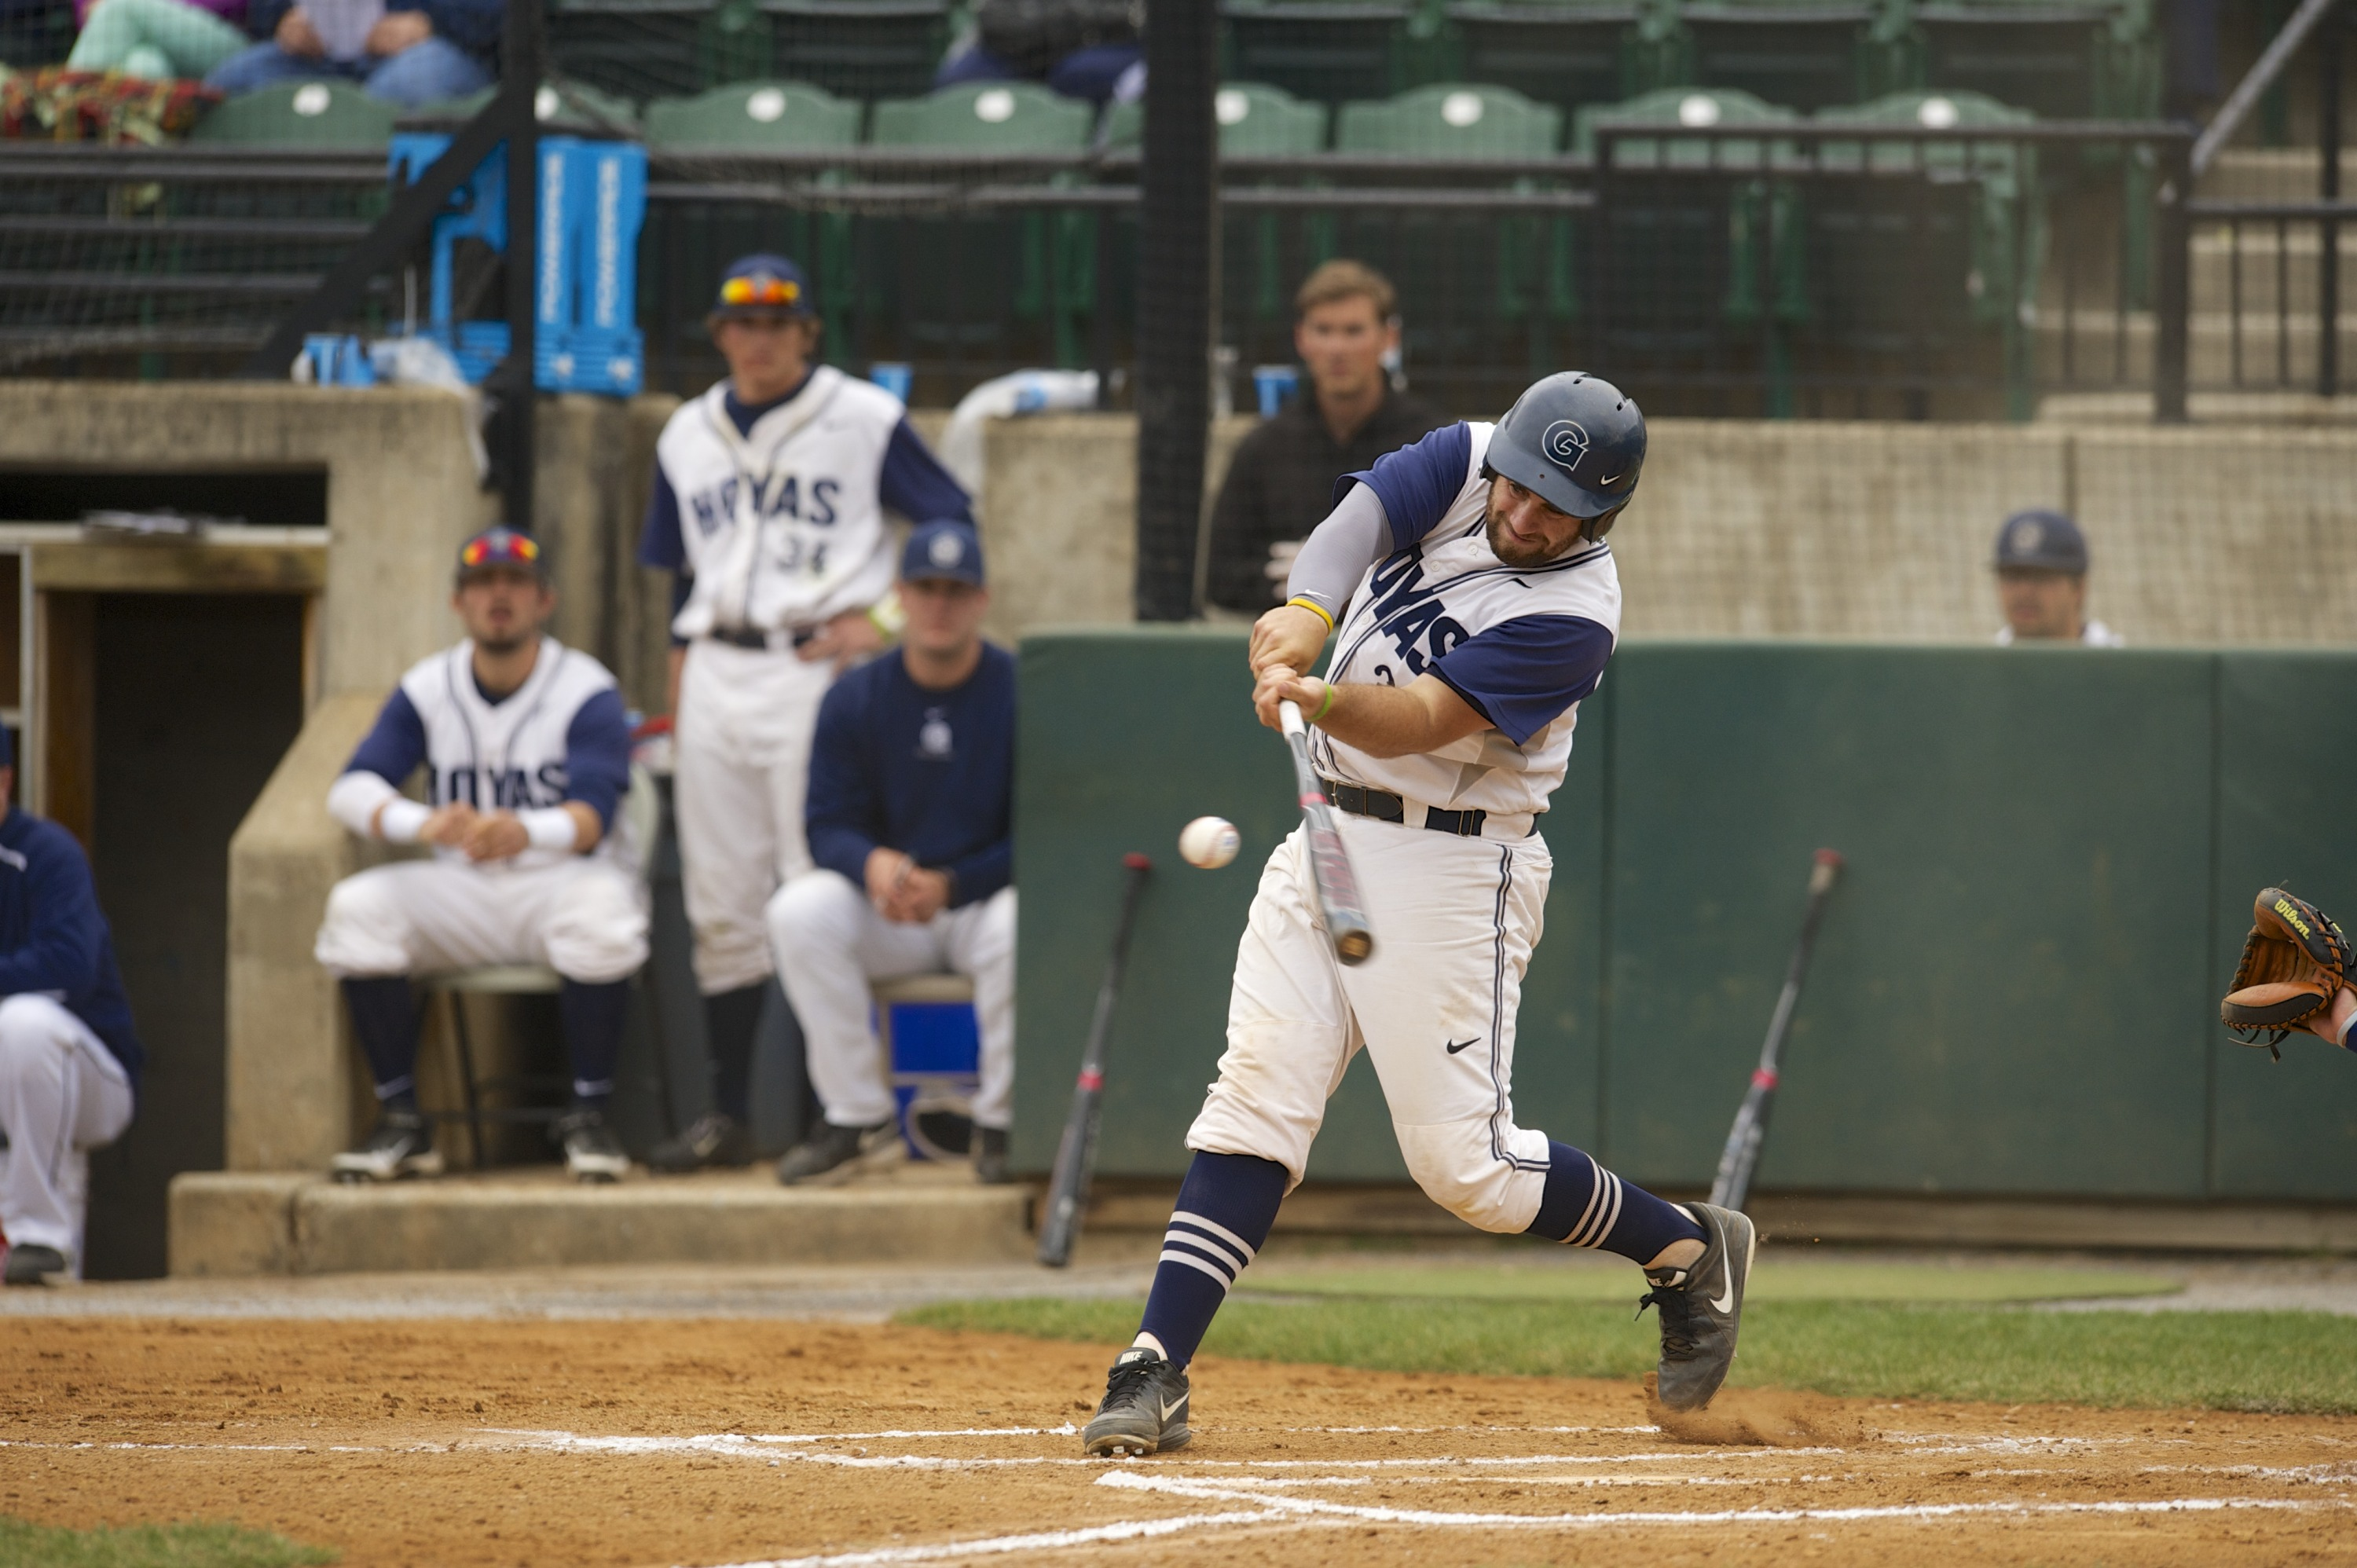 The Hoyas only managed nine hits on the day, led by three from Nick Collins.